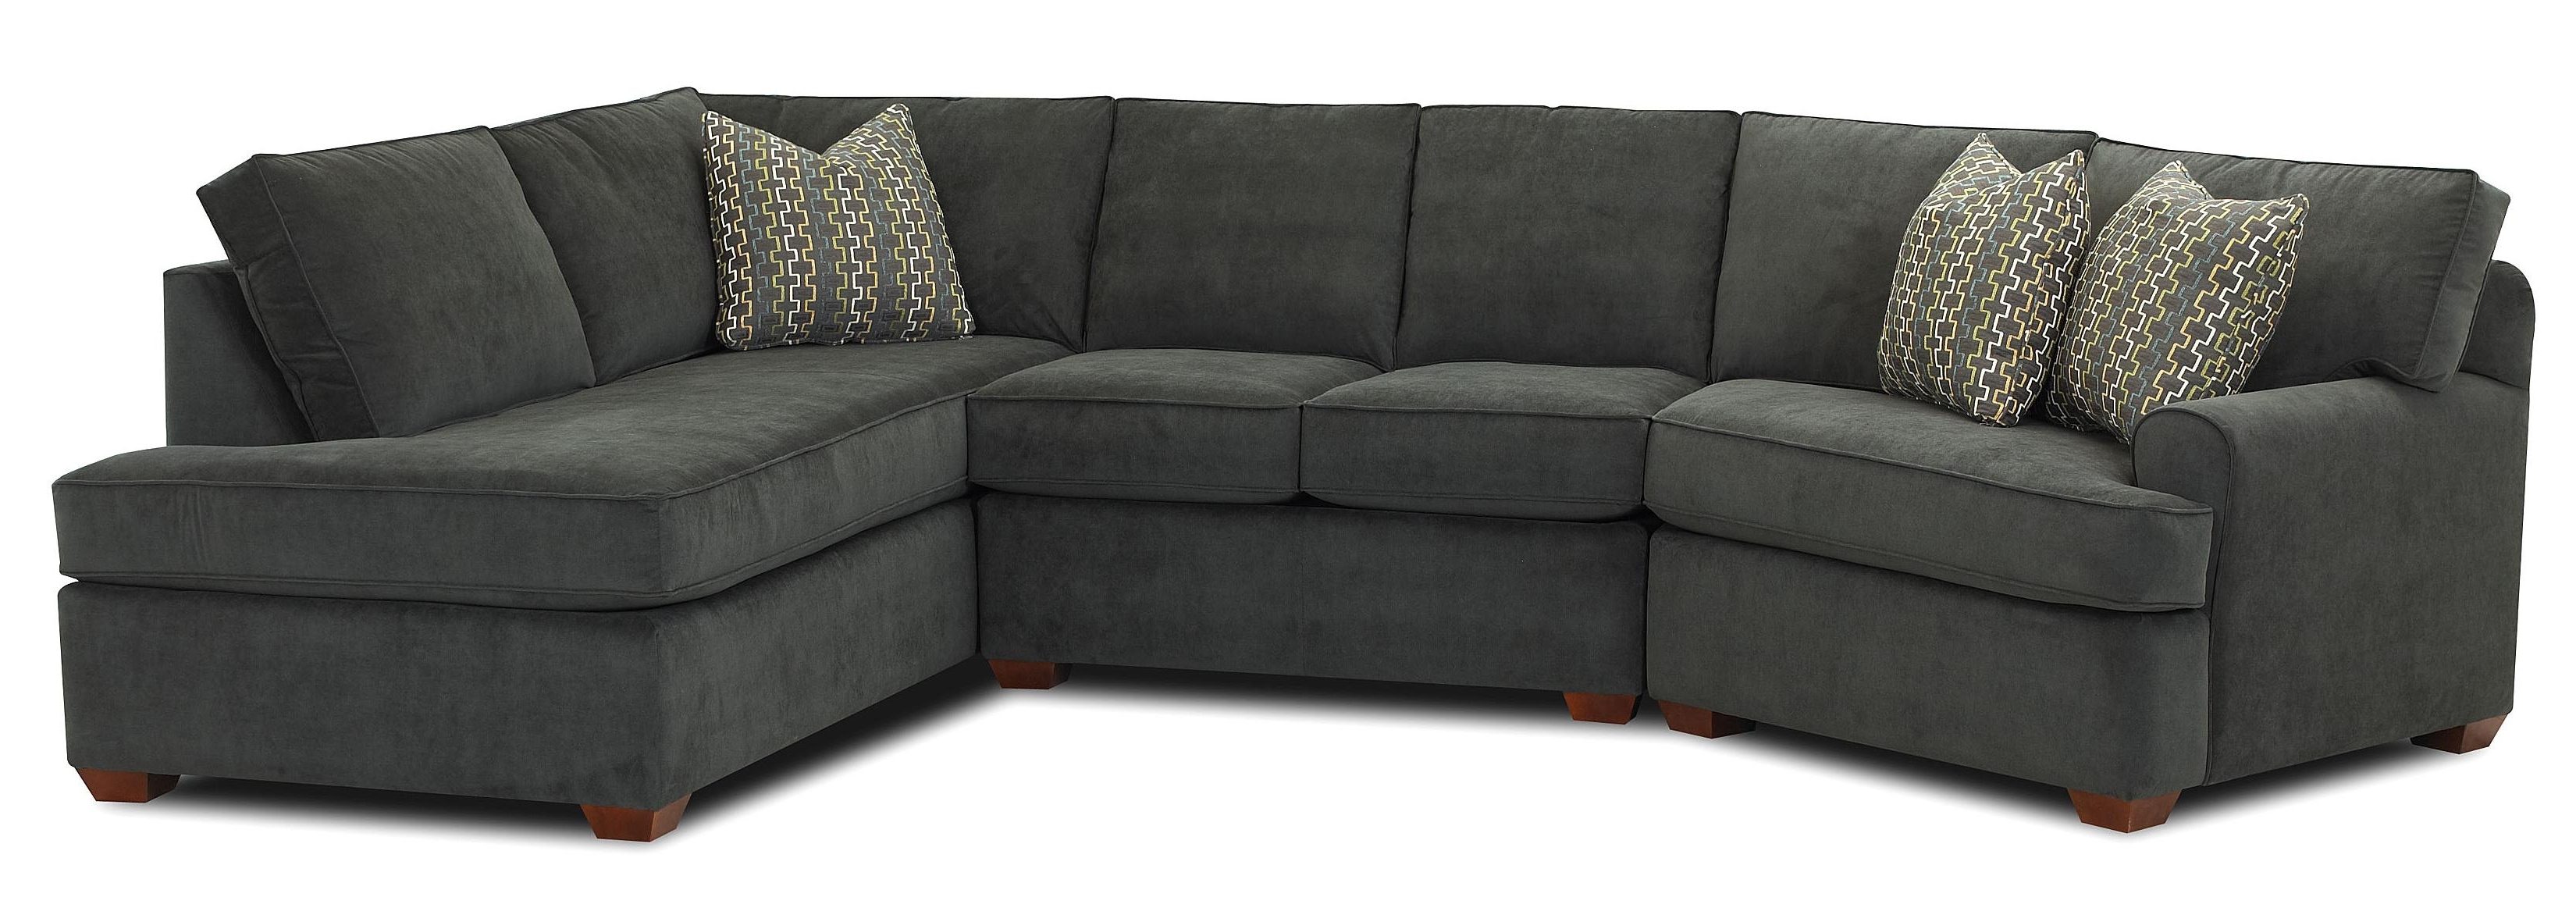 2017 Sectional Chaise Sofas Throughout Sectional Sofa Design: Elegant Sectional Sofas Chaise Chaise (View 1 of 15)